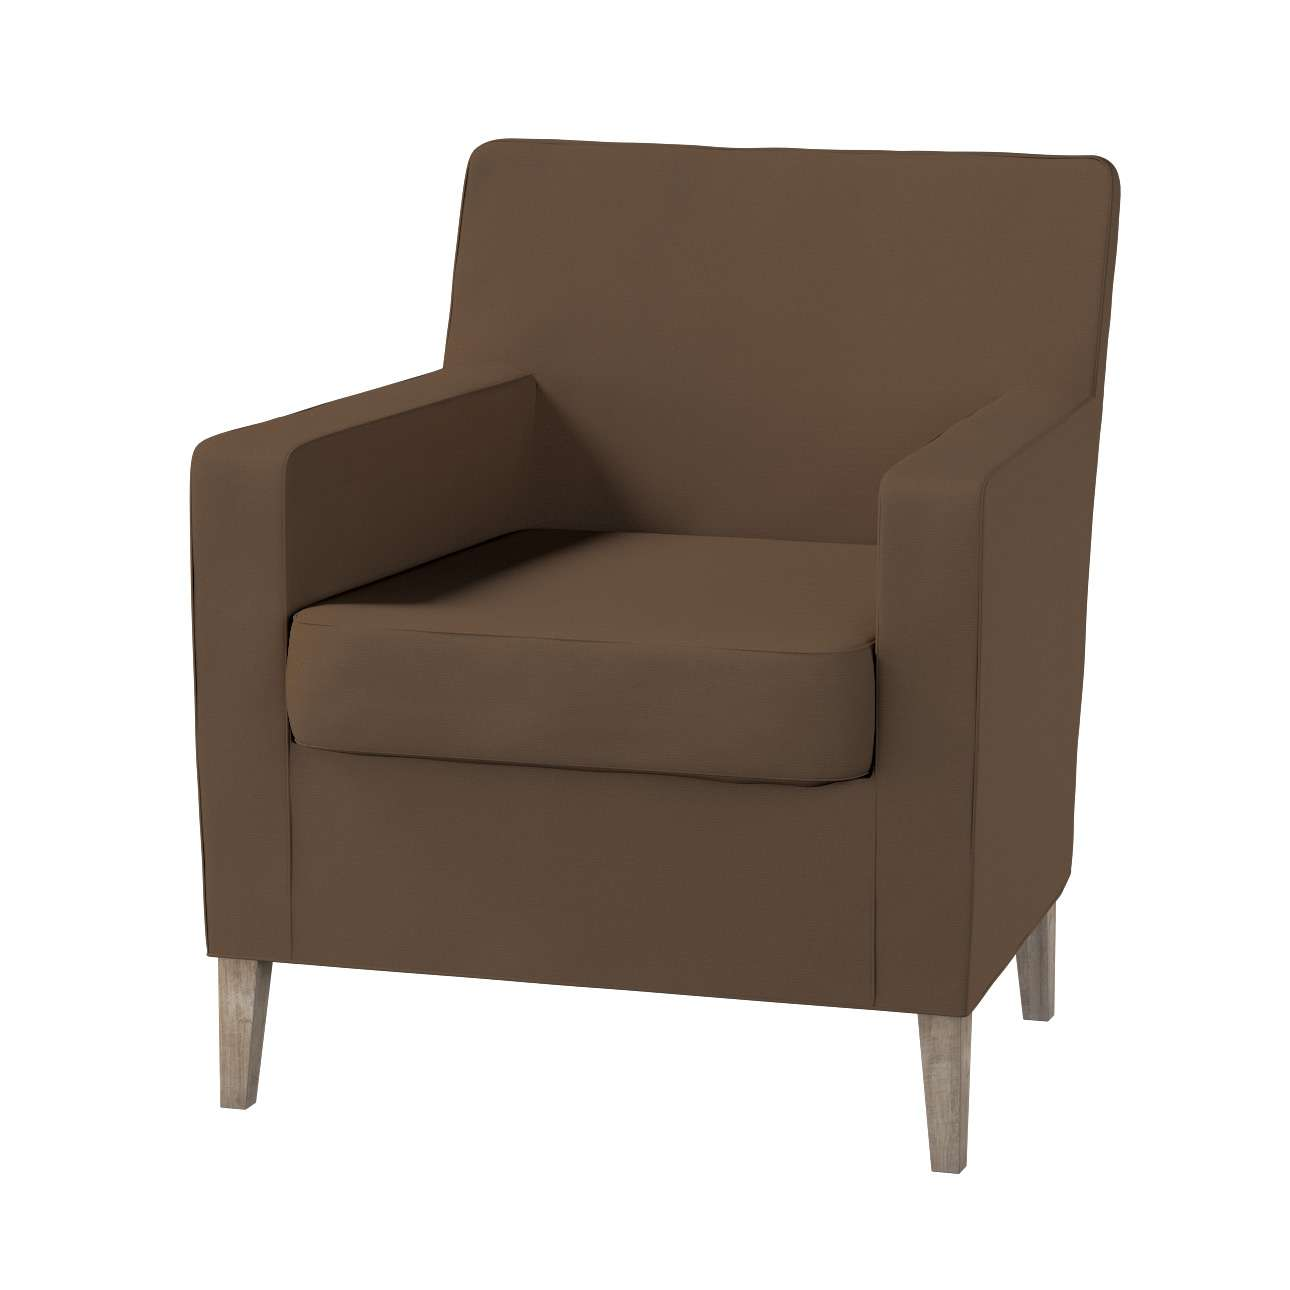 Karlstad tall chair cover Karlstad armchair cover in collection Cotton Panama, fabric: 702-02